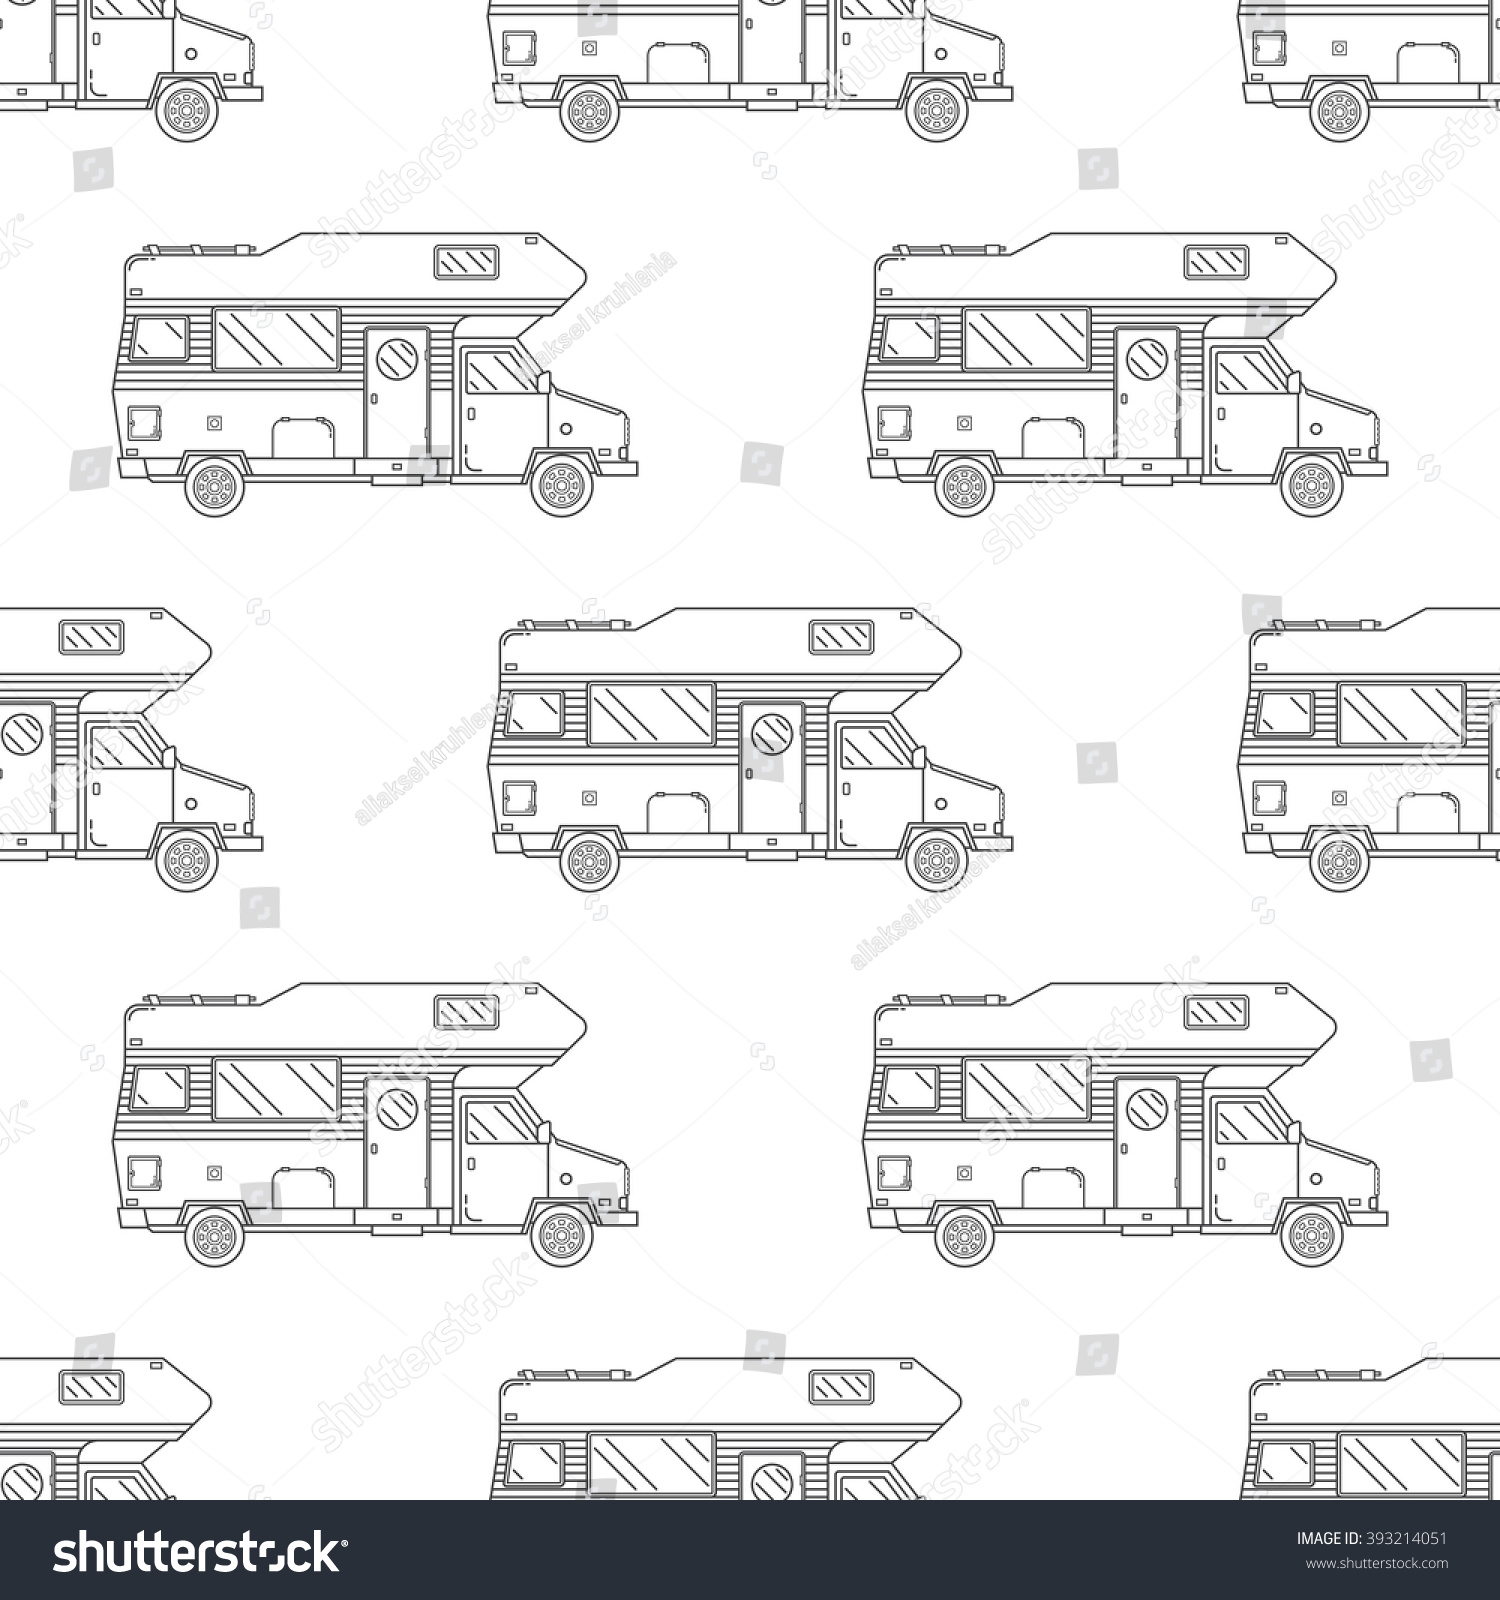 RV Camper Seamless Pattern Camping Trailer Outline Repeating Background For Textile Web Banners And